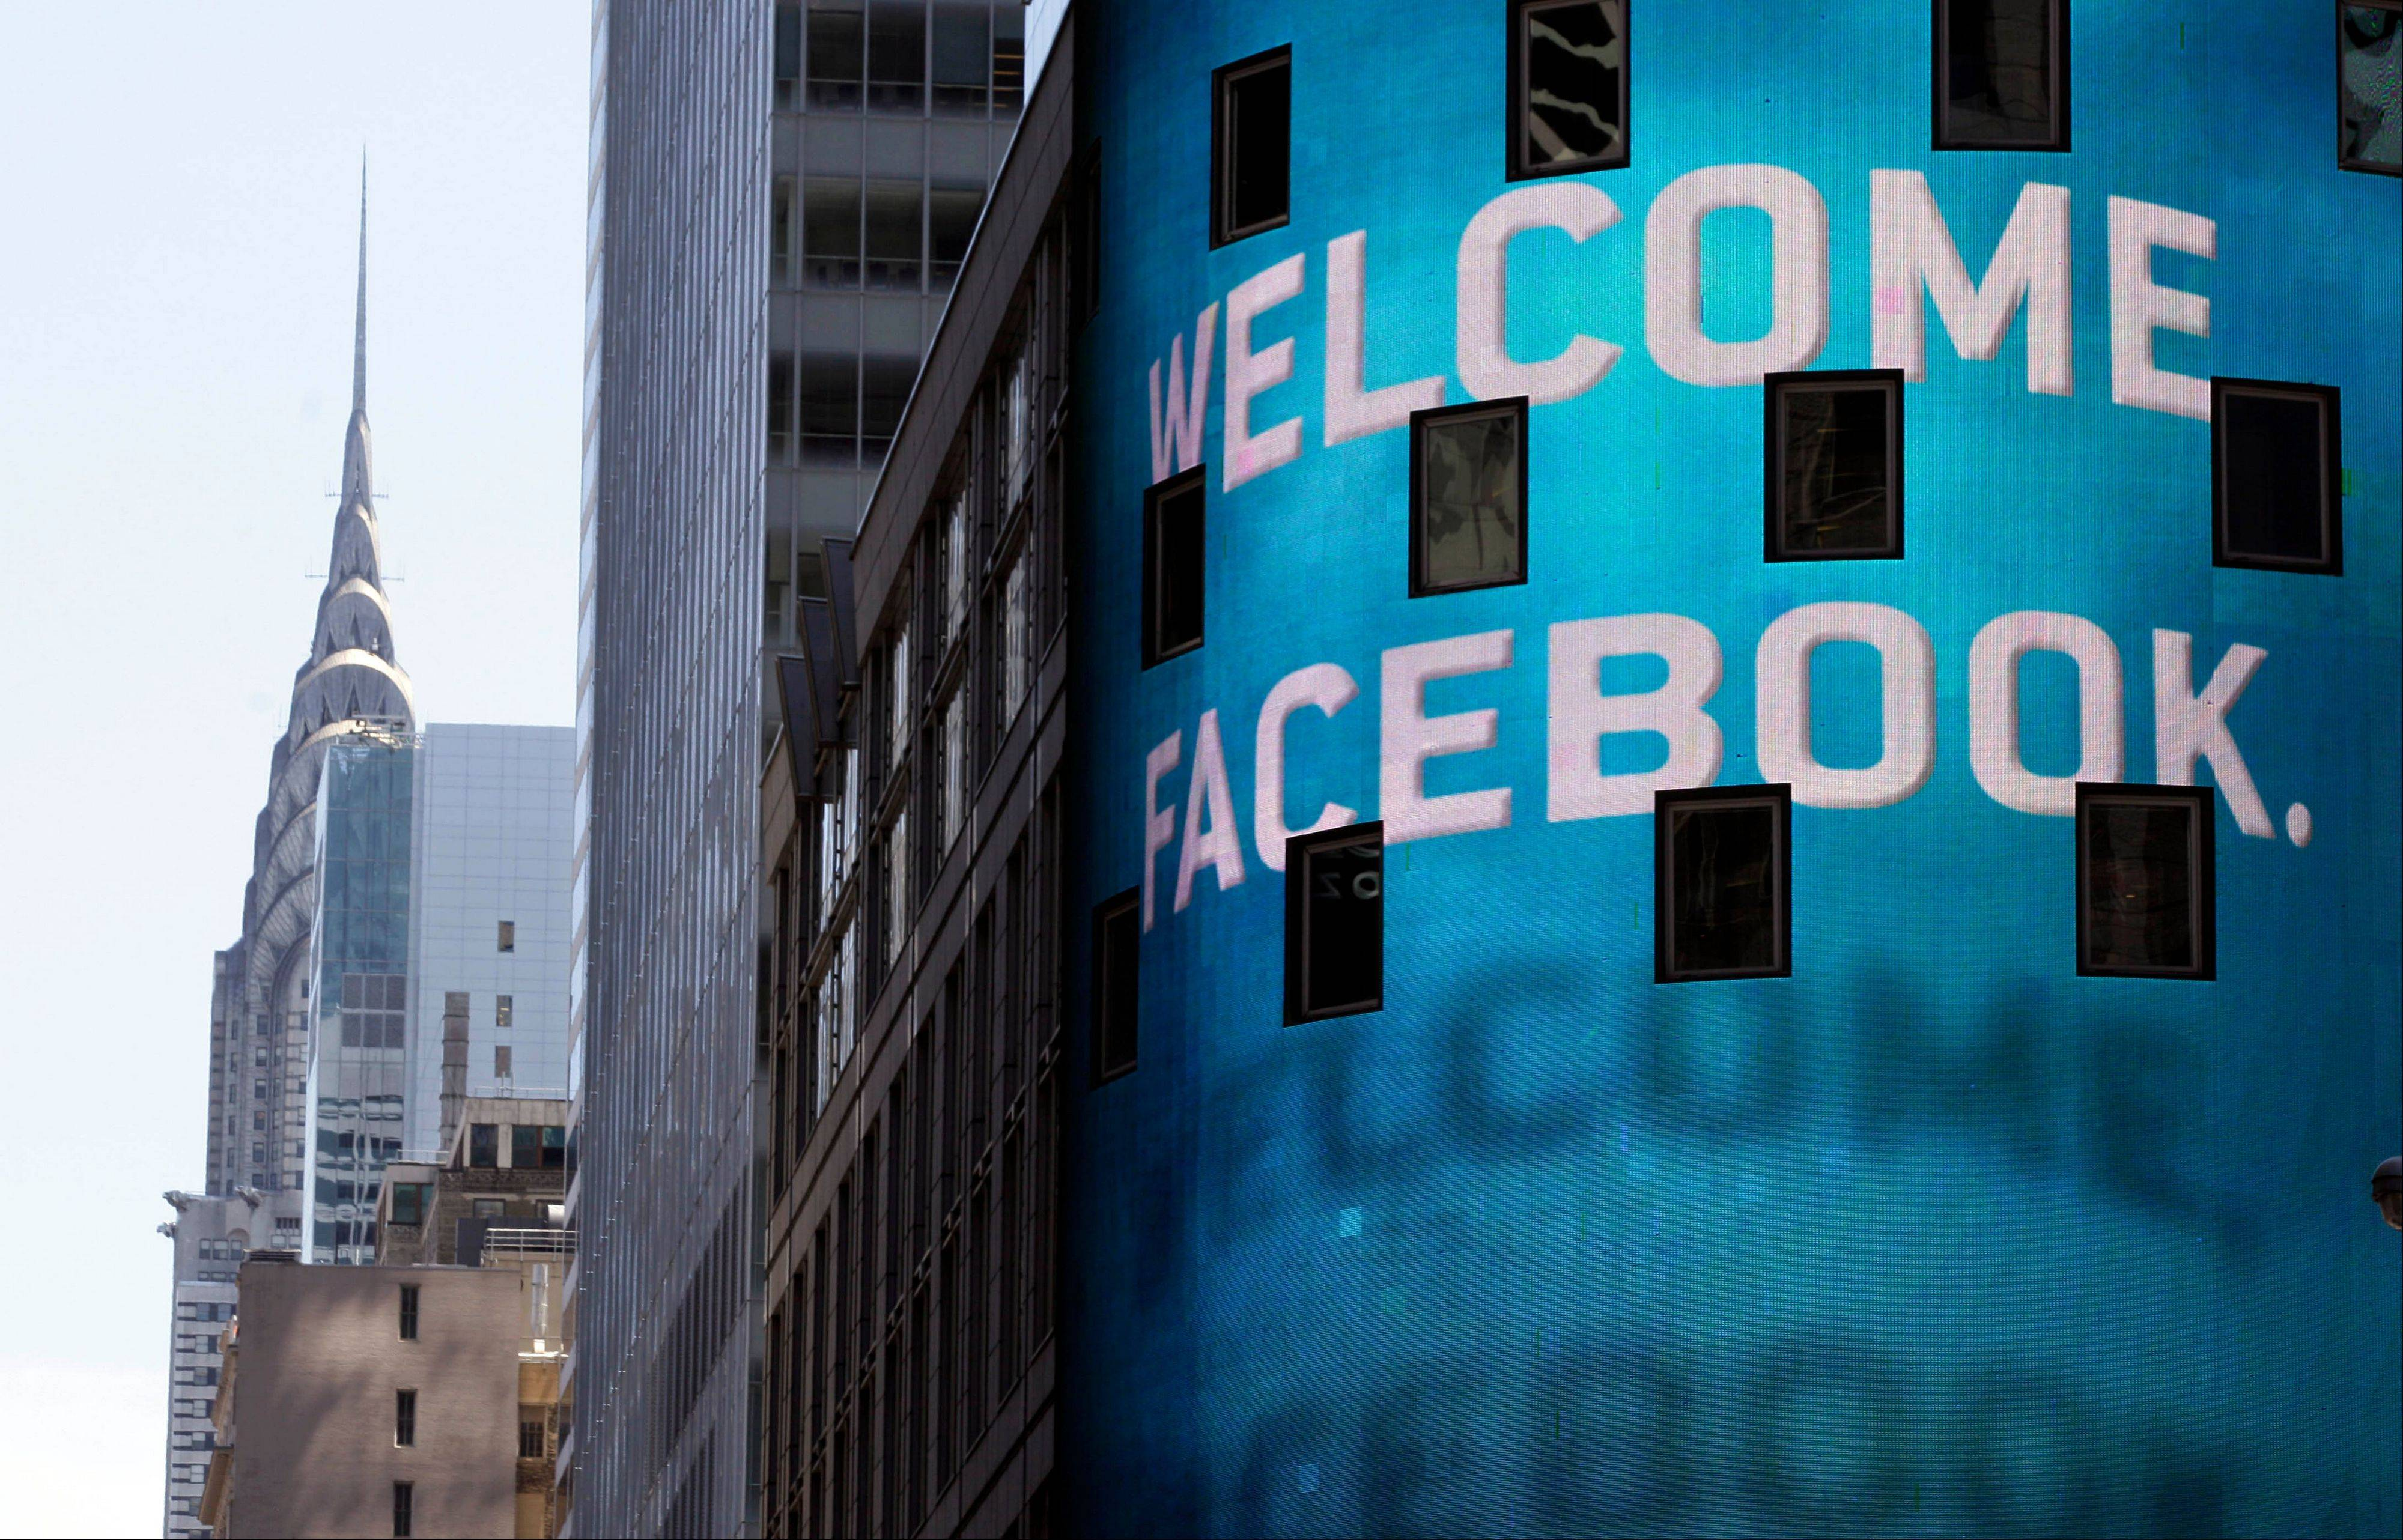 In the month since Facebook's IPO, the market for initial public offerings has gone cold. Venture capitalists say the fallout from Facebook's rocky IPO is making technology companies more cautious about going public.